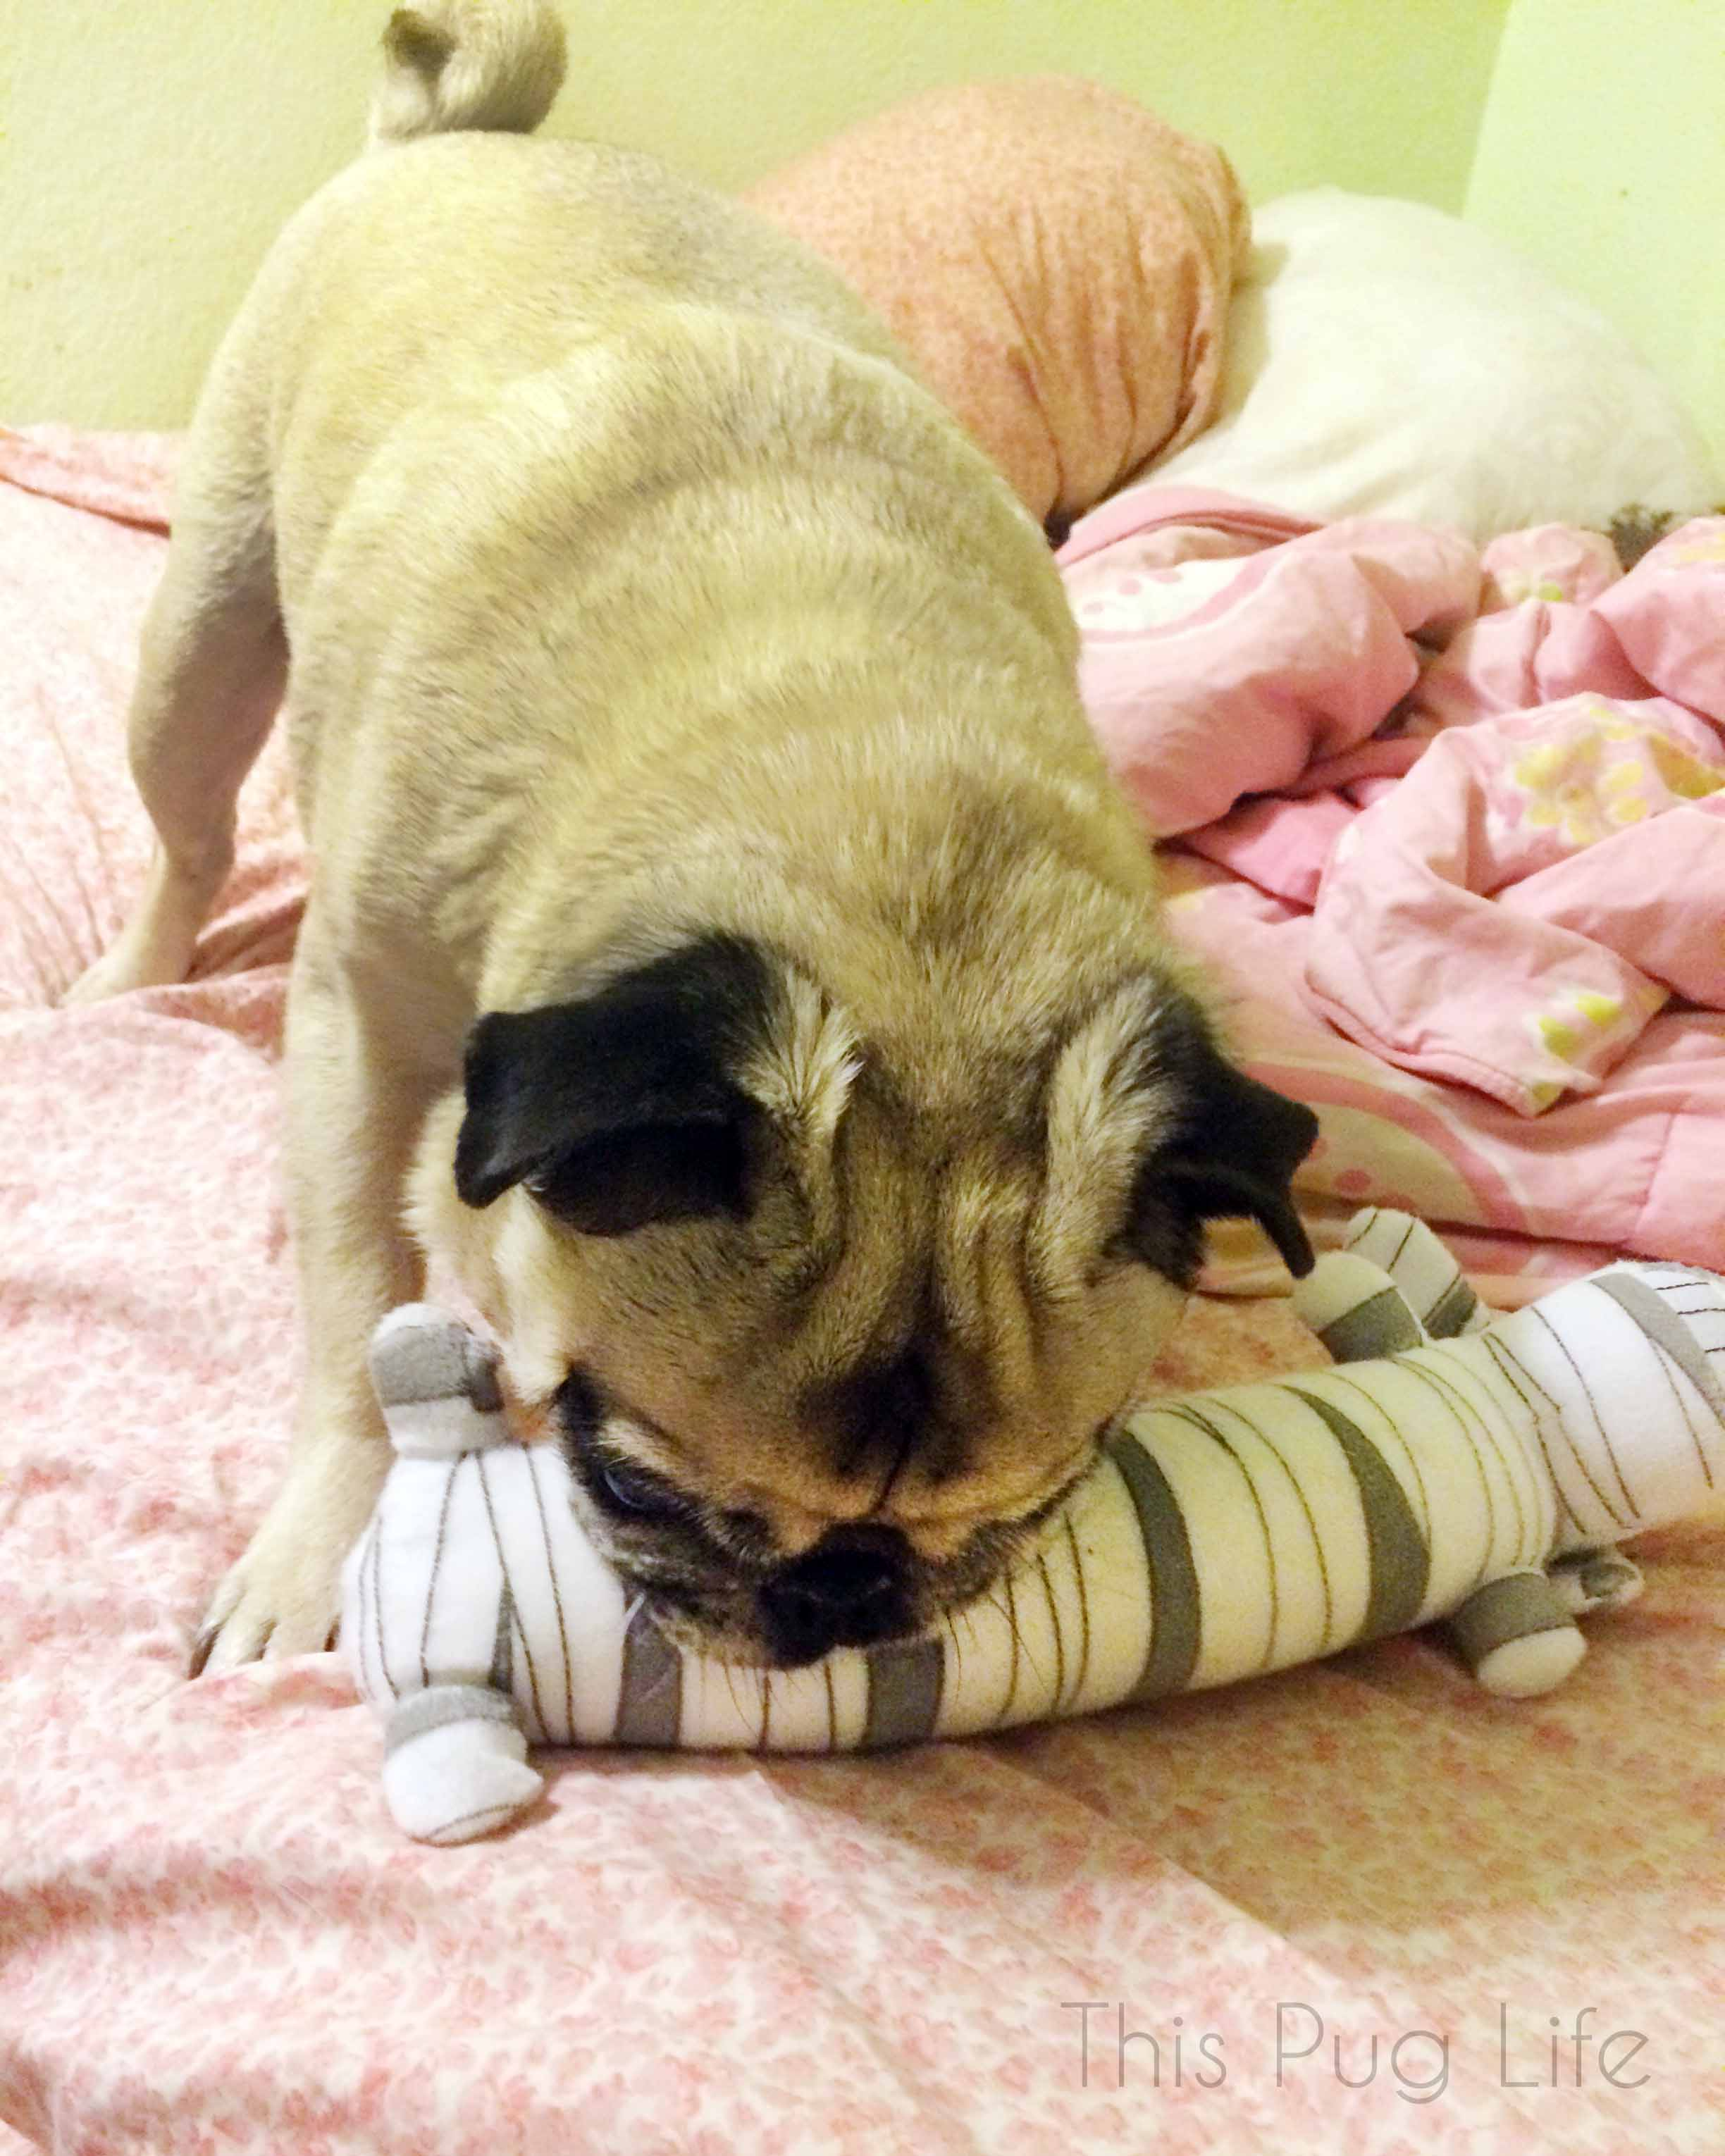 Pug's Mummy Loofah Dog